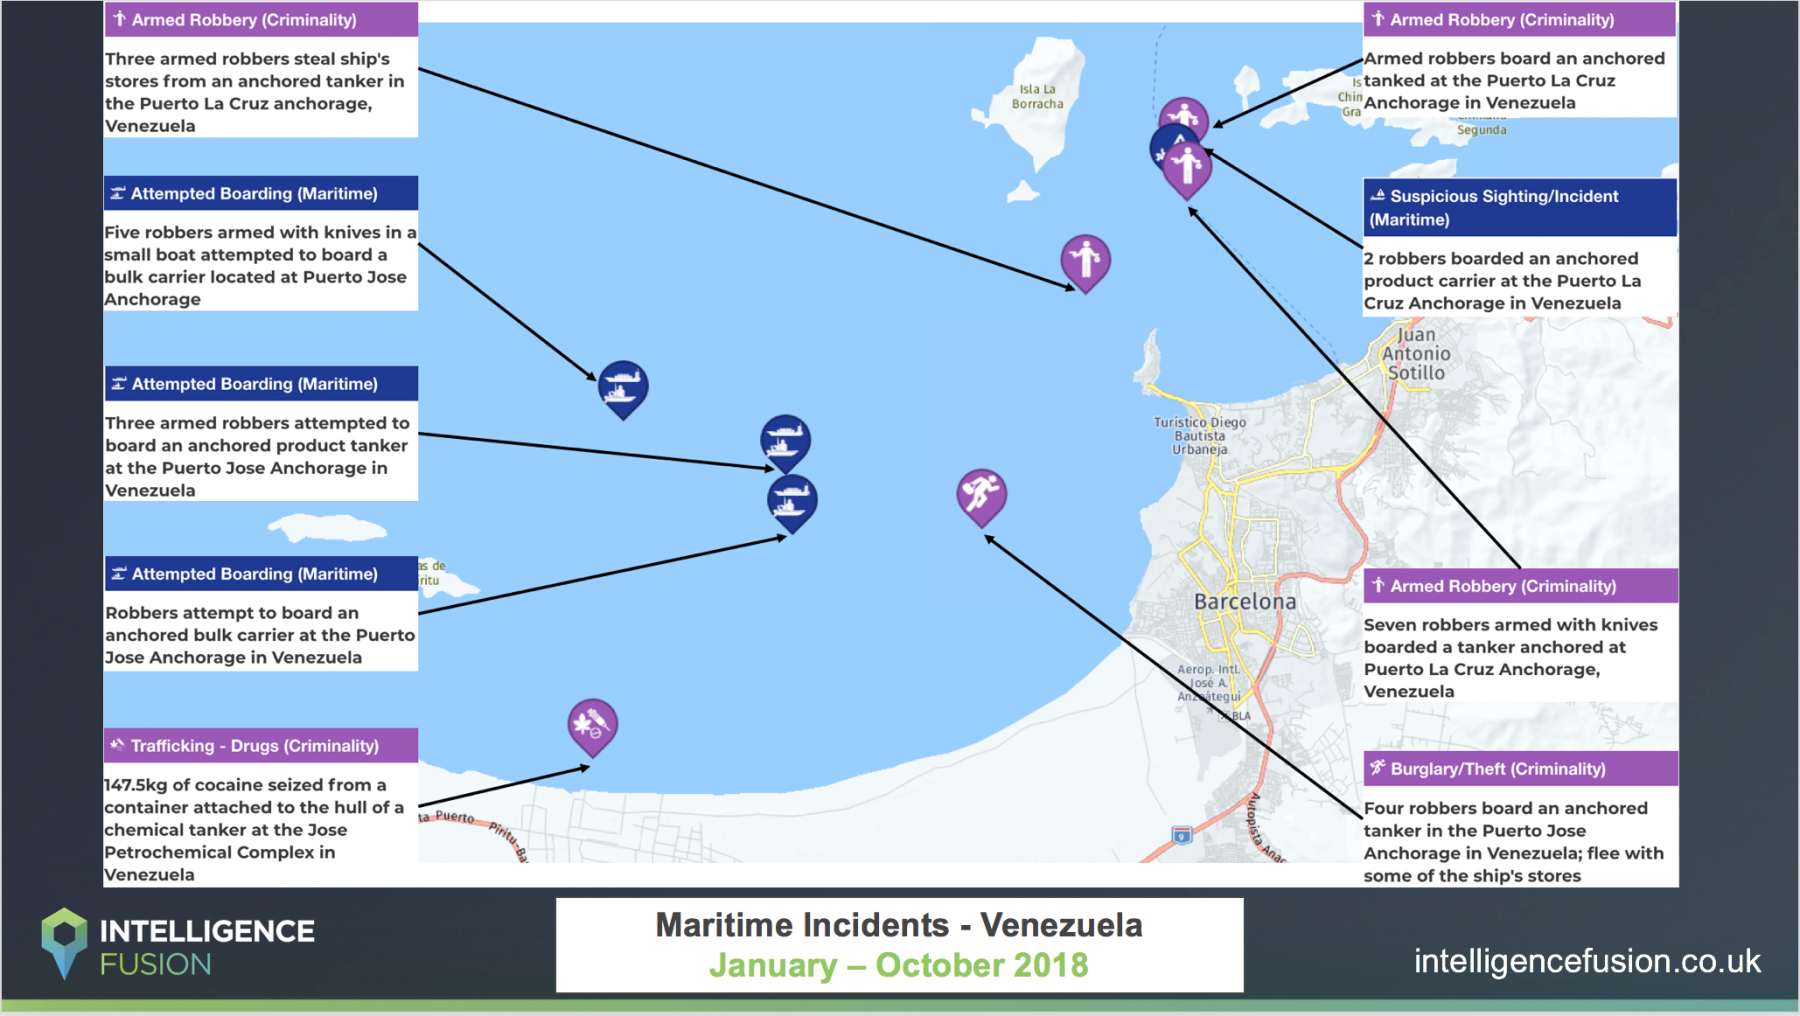 A map of the maritime threats and related incidents across Venezuela during September of 2018